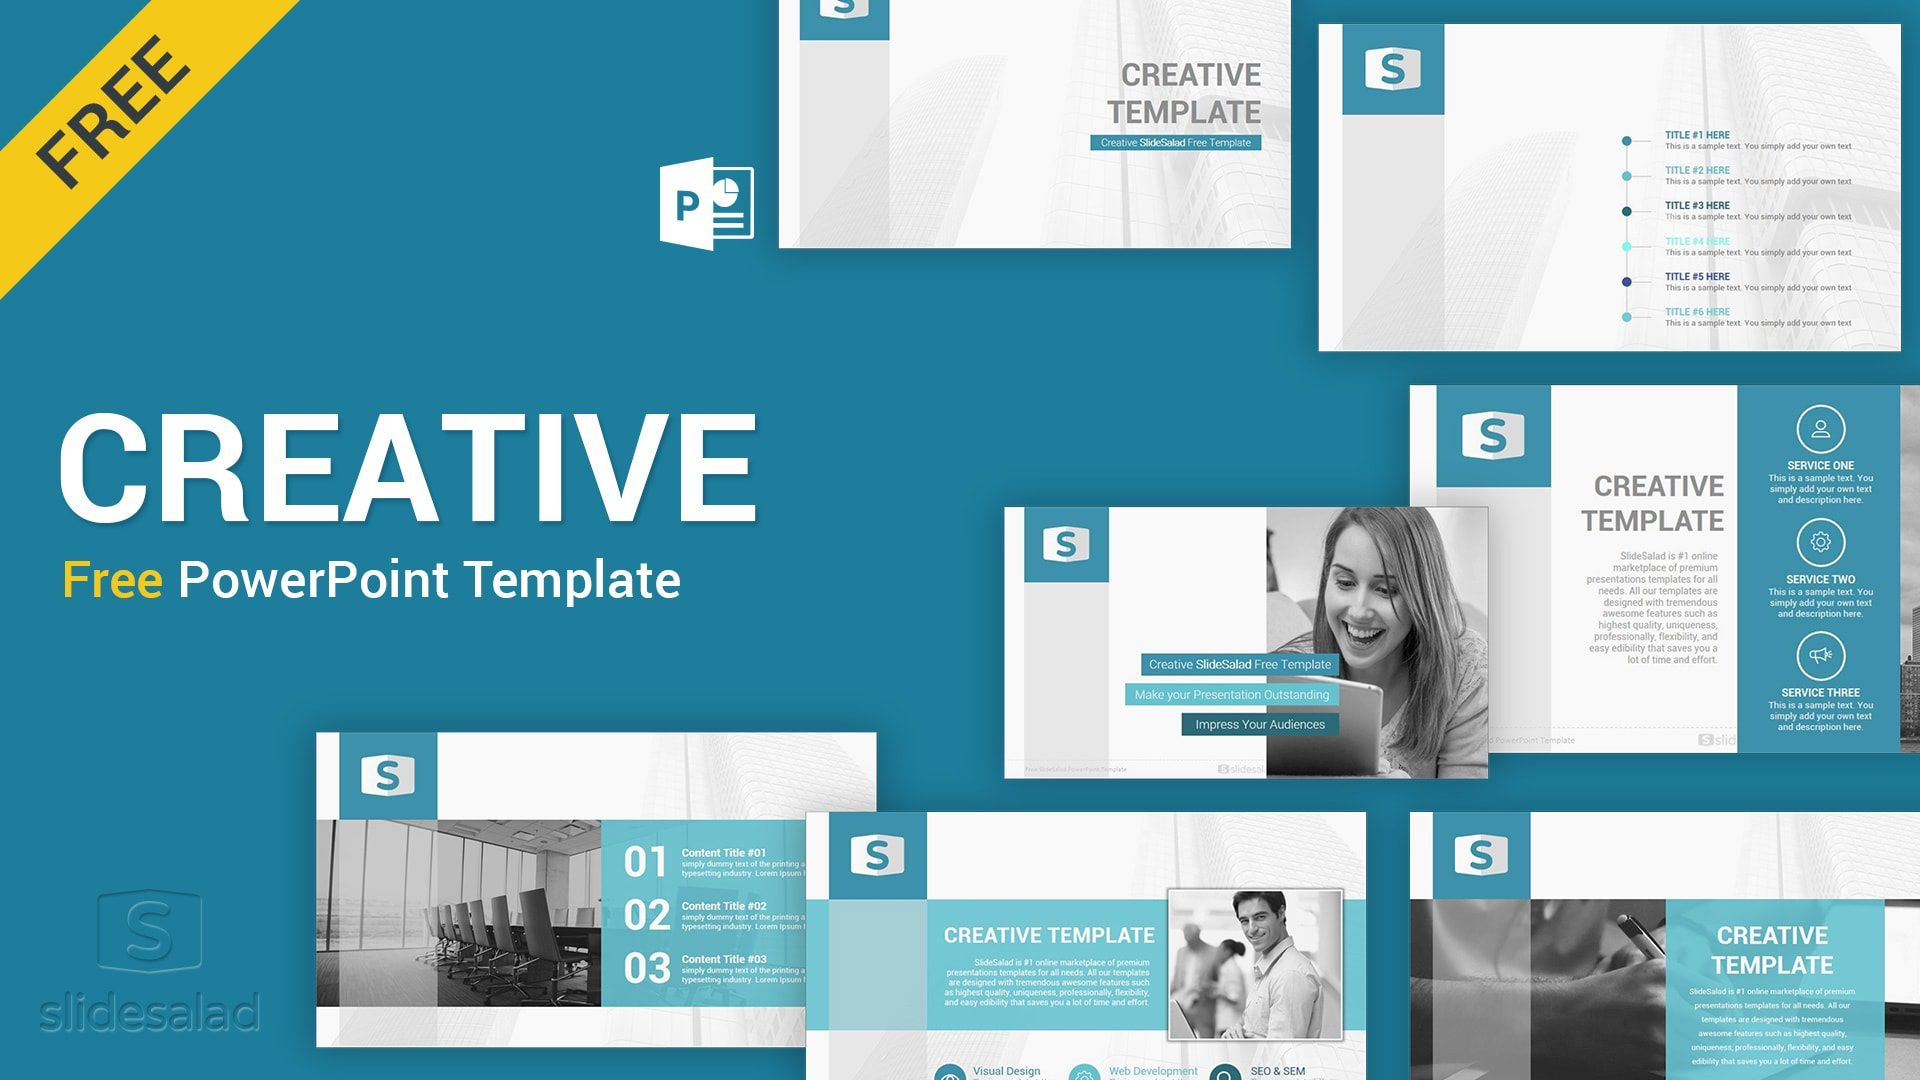 005 Formidable Free Downloadable Ppt Template Highest Quality  Templates For College Project Presentation Download Animated MedicalFull